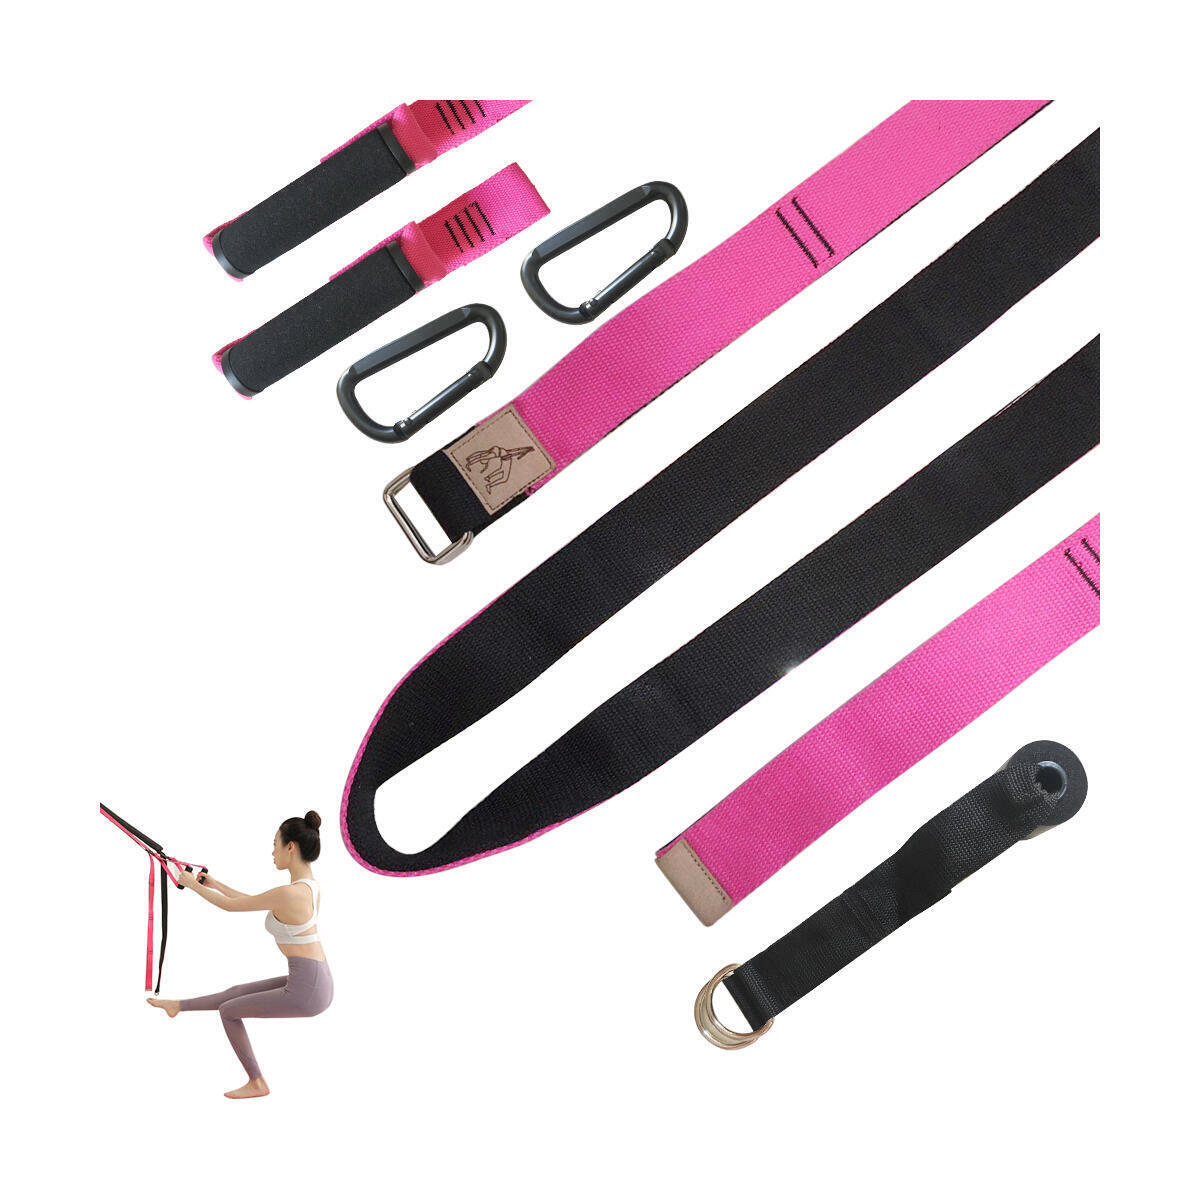 Home Gym, Multifunctional Bodyweight Resistance Straps and Yoga Training Including Training Posters